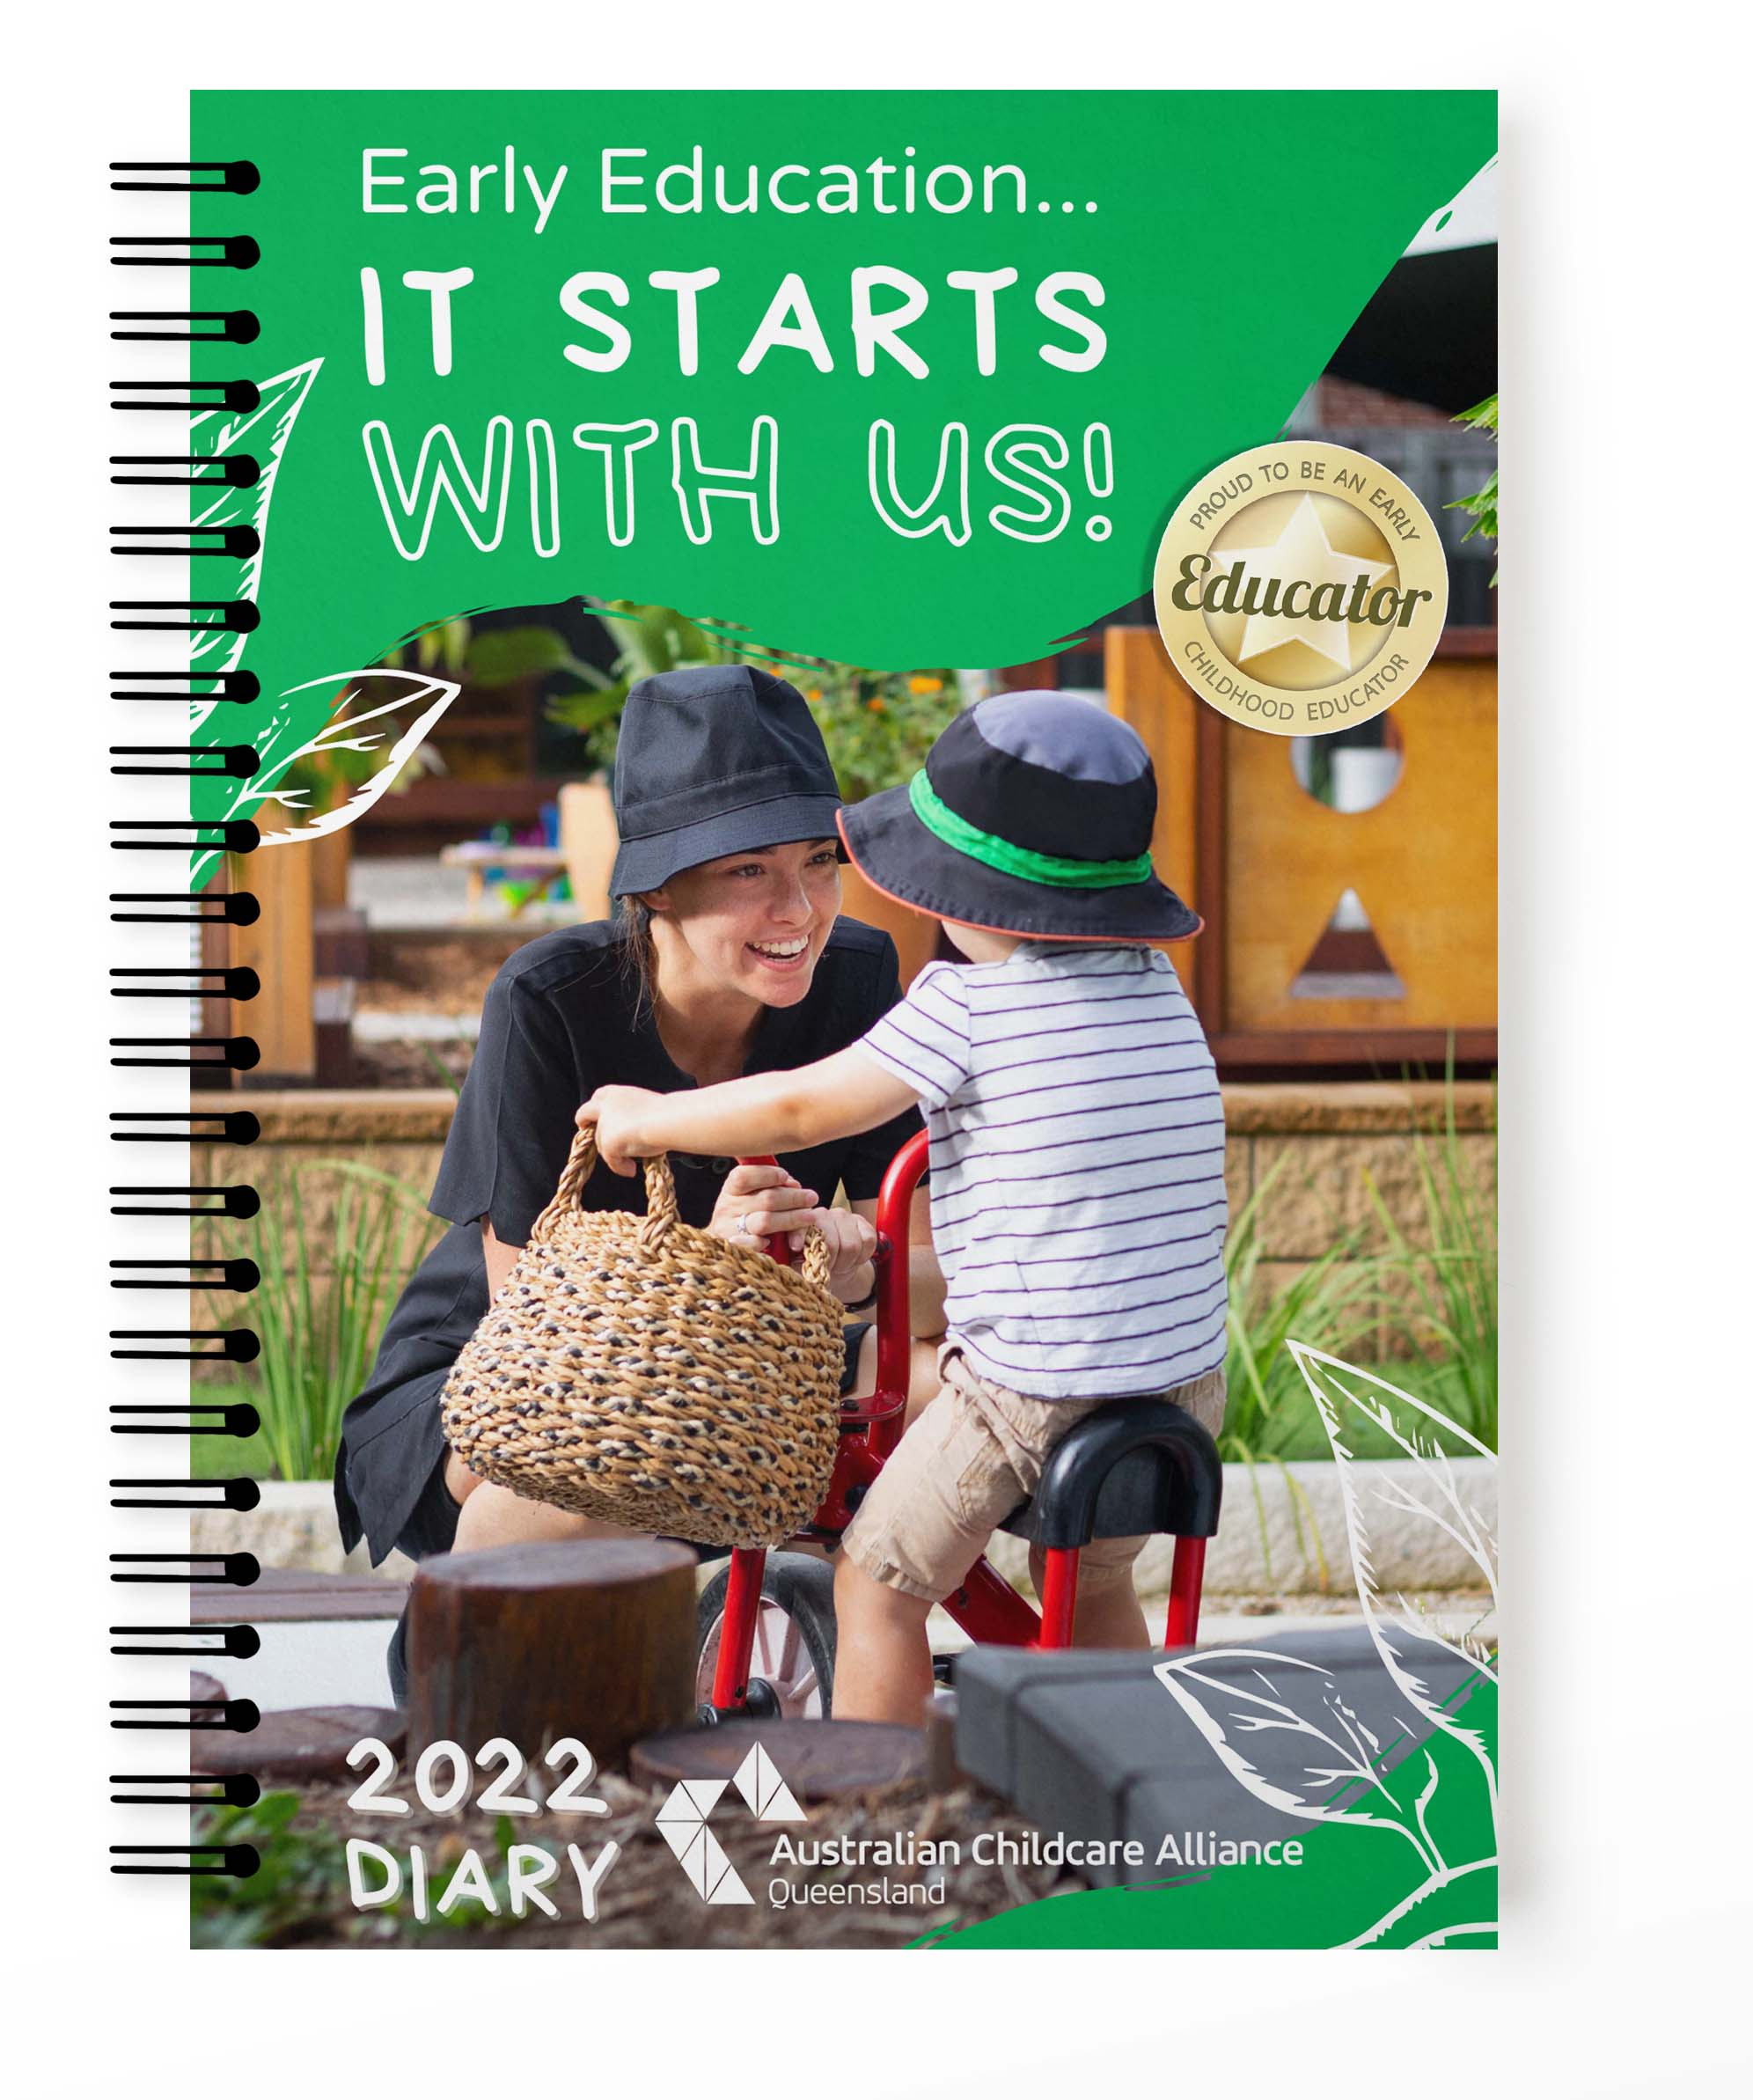 Pre-order your ACA Qld 2022 Diary!